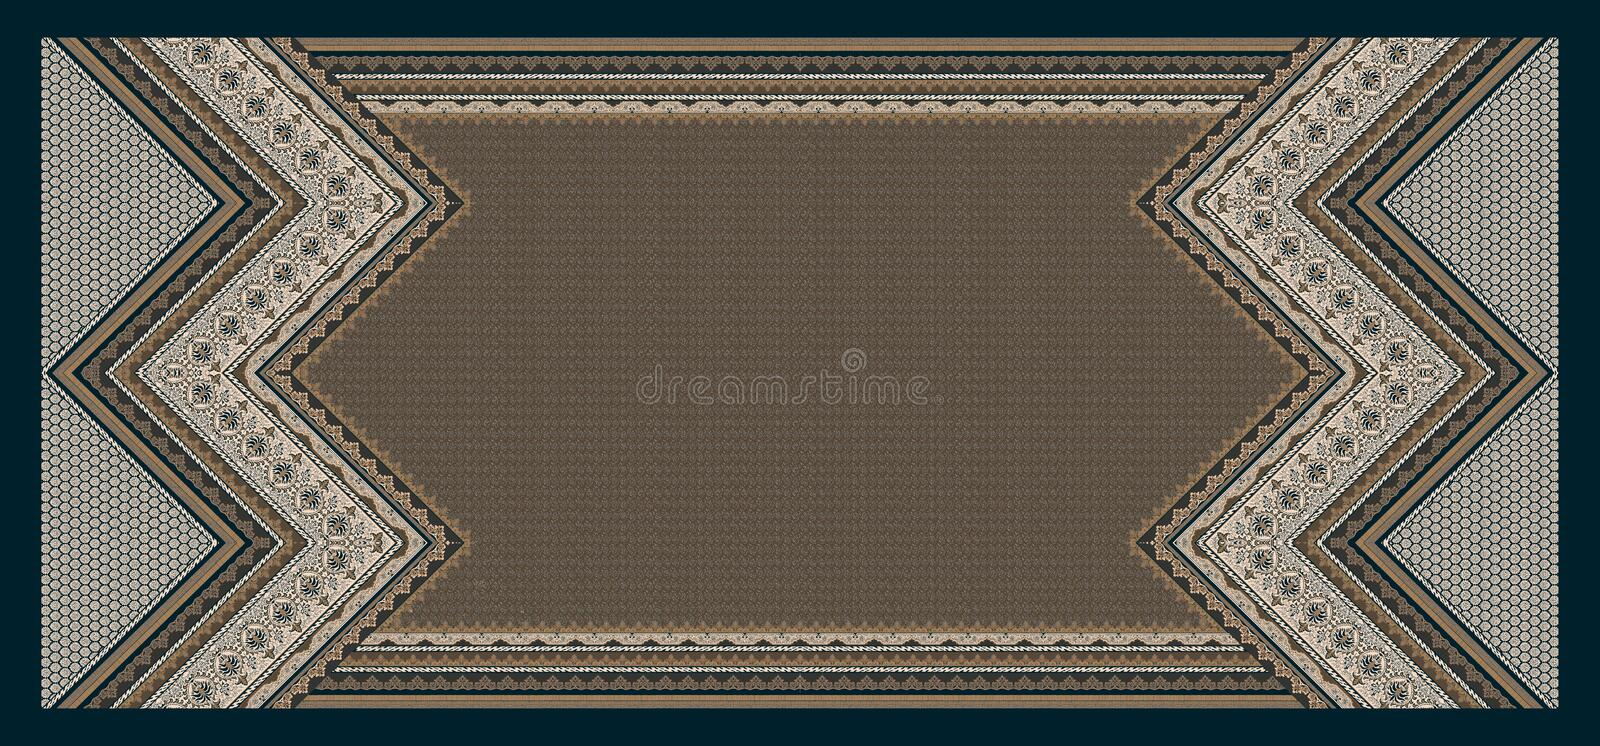 Seamless abstract geometric traditional wave background royalty free illustration